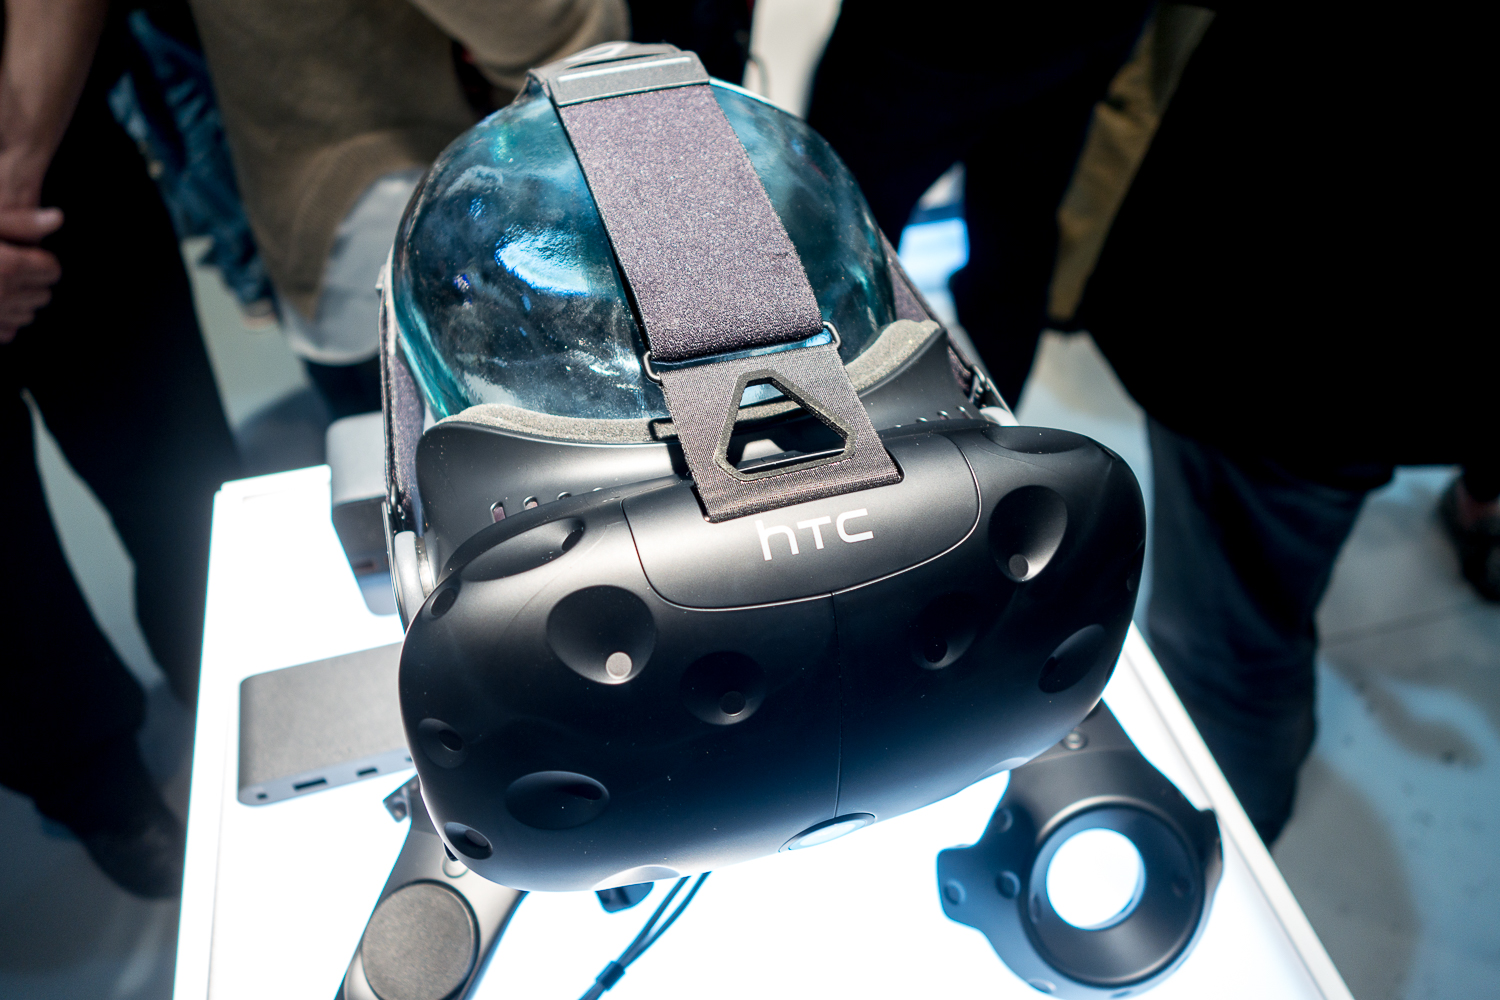 Sony Phone Vr Htc Vive Unveiled This Is What The Final Consumer Version